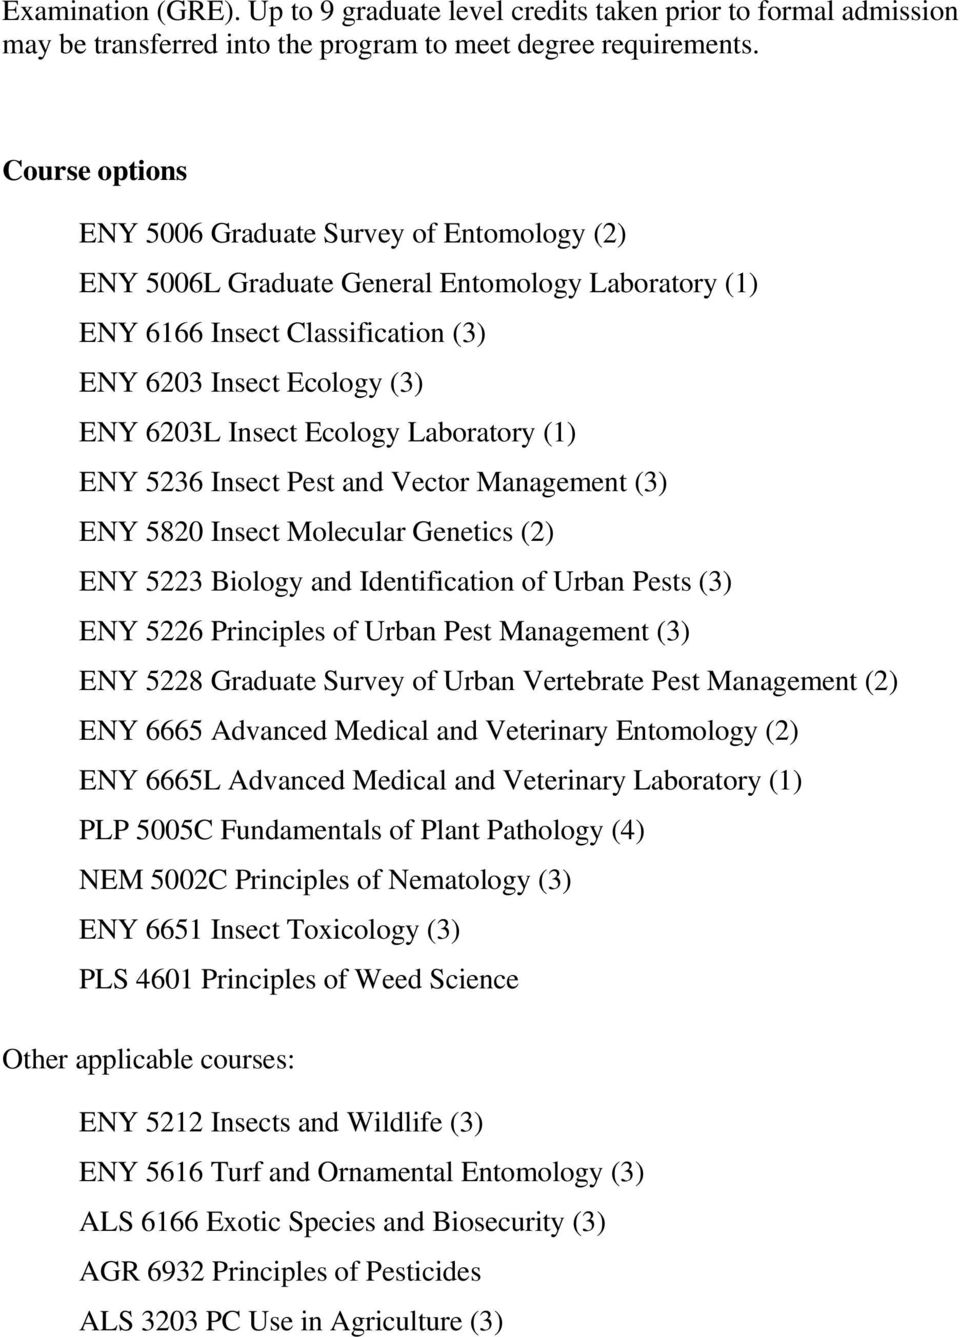 Laboratory (1) ENY 5820 Insect Molecular Genetics (2) ENY 5223 Biology and Identification of Urban Pests (3) ENY 5226 Principles of Urban Pest Management (3) ENY 5228 Graduate Survey of Urban